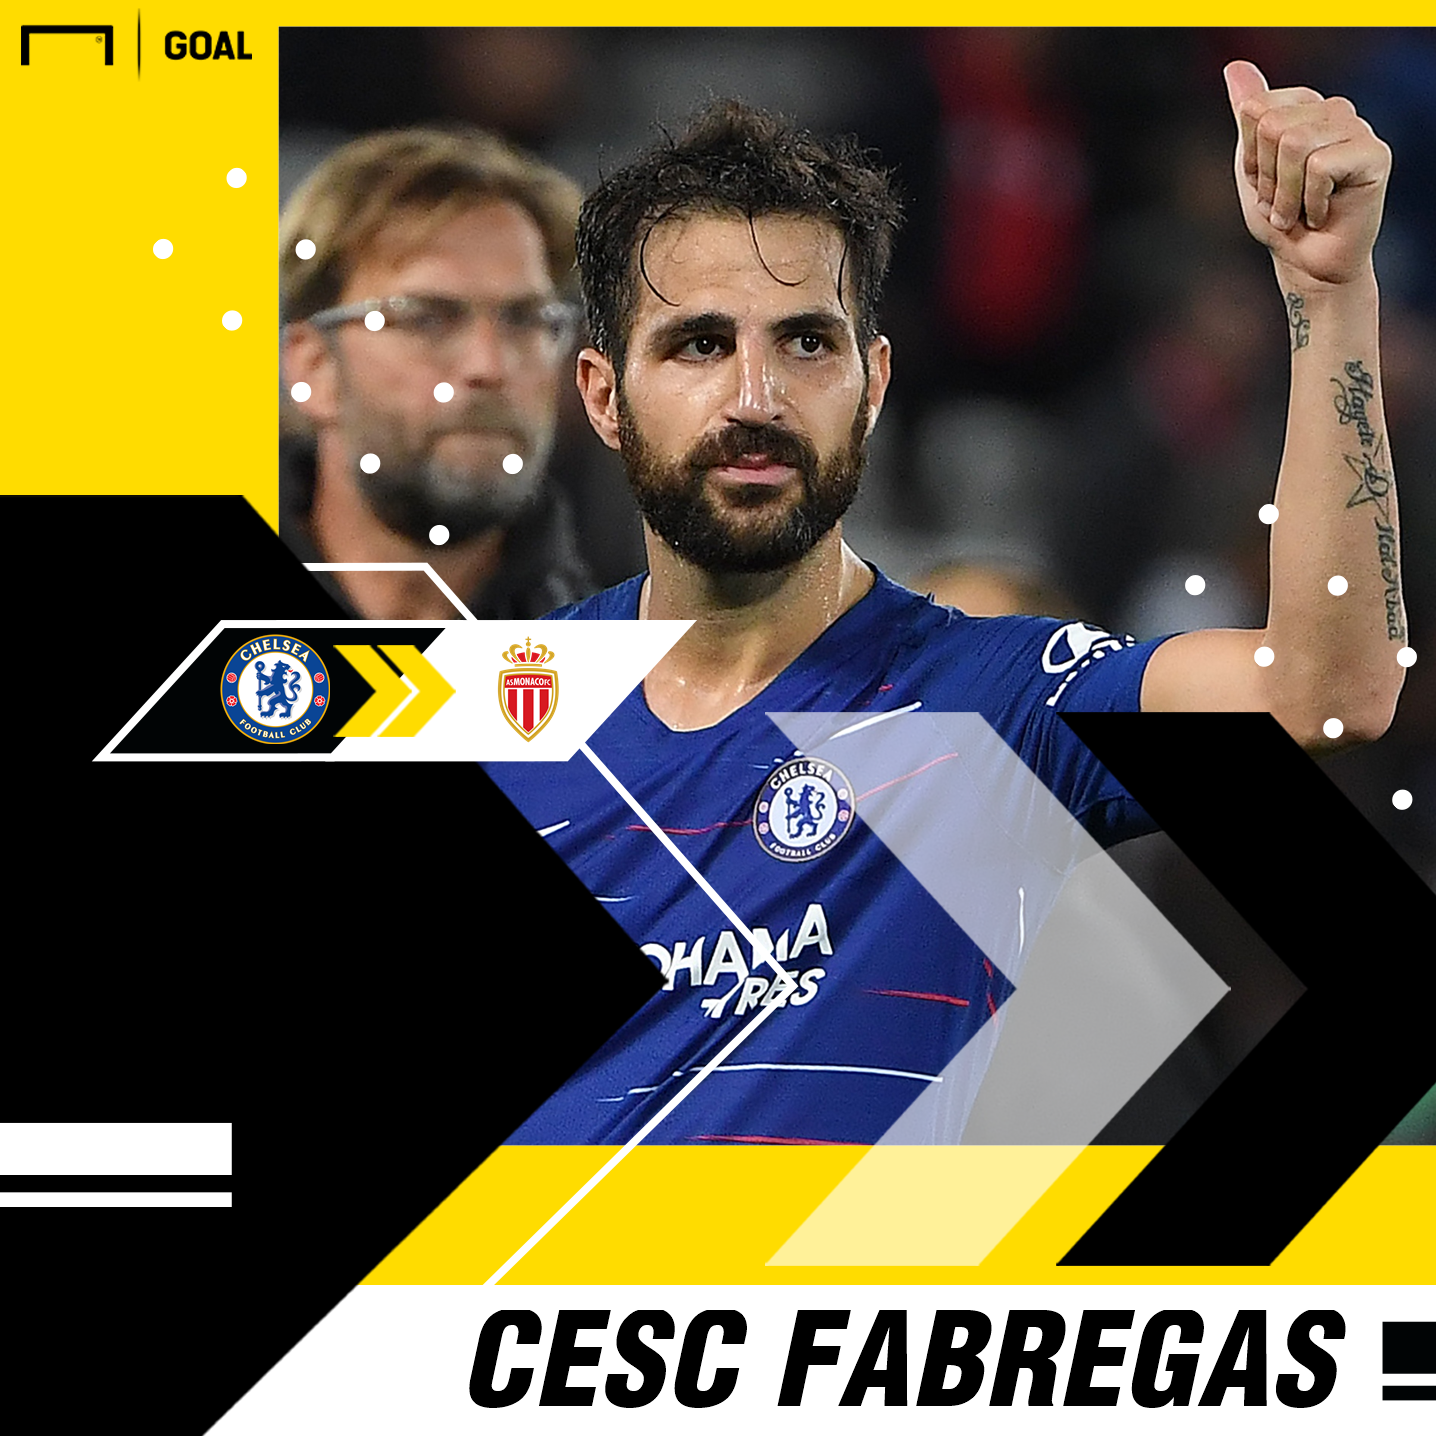 Fabregas completes move from Chelsea to Monaco